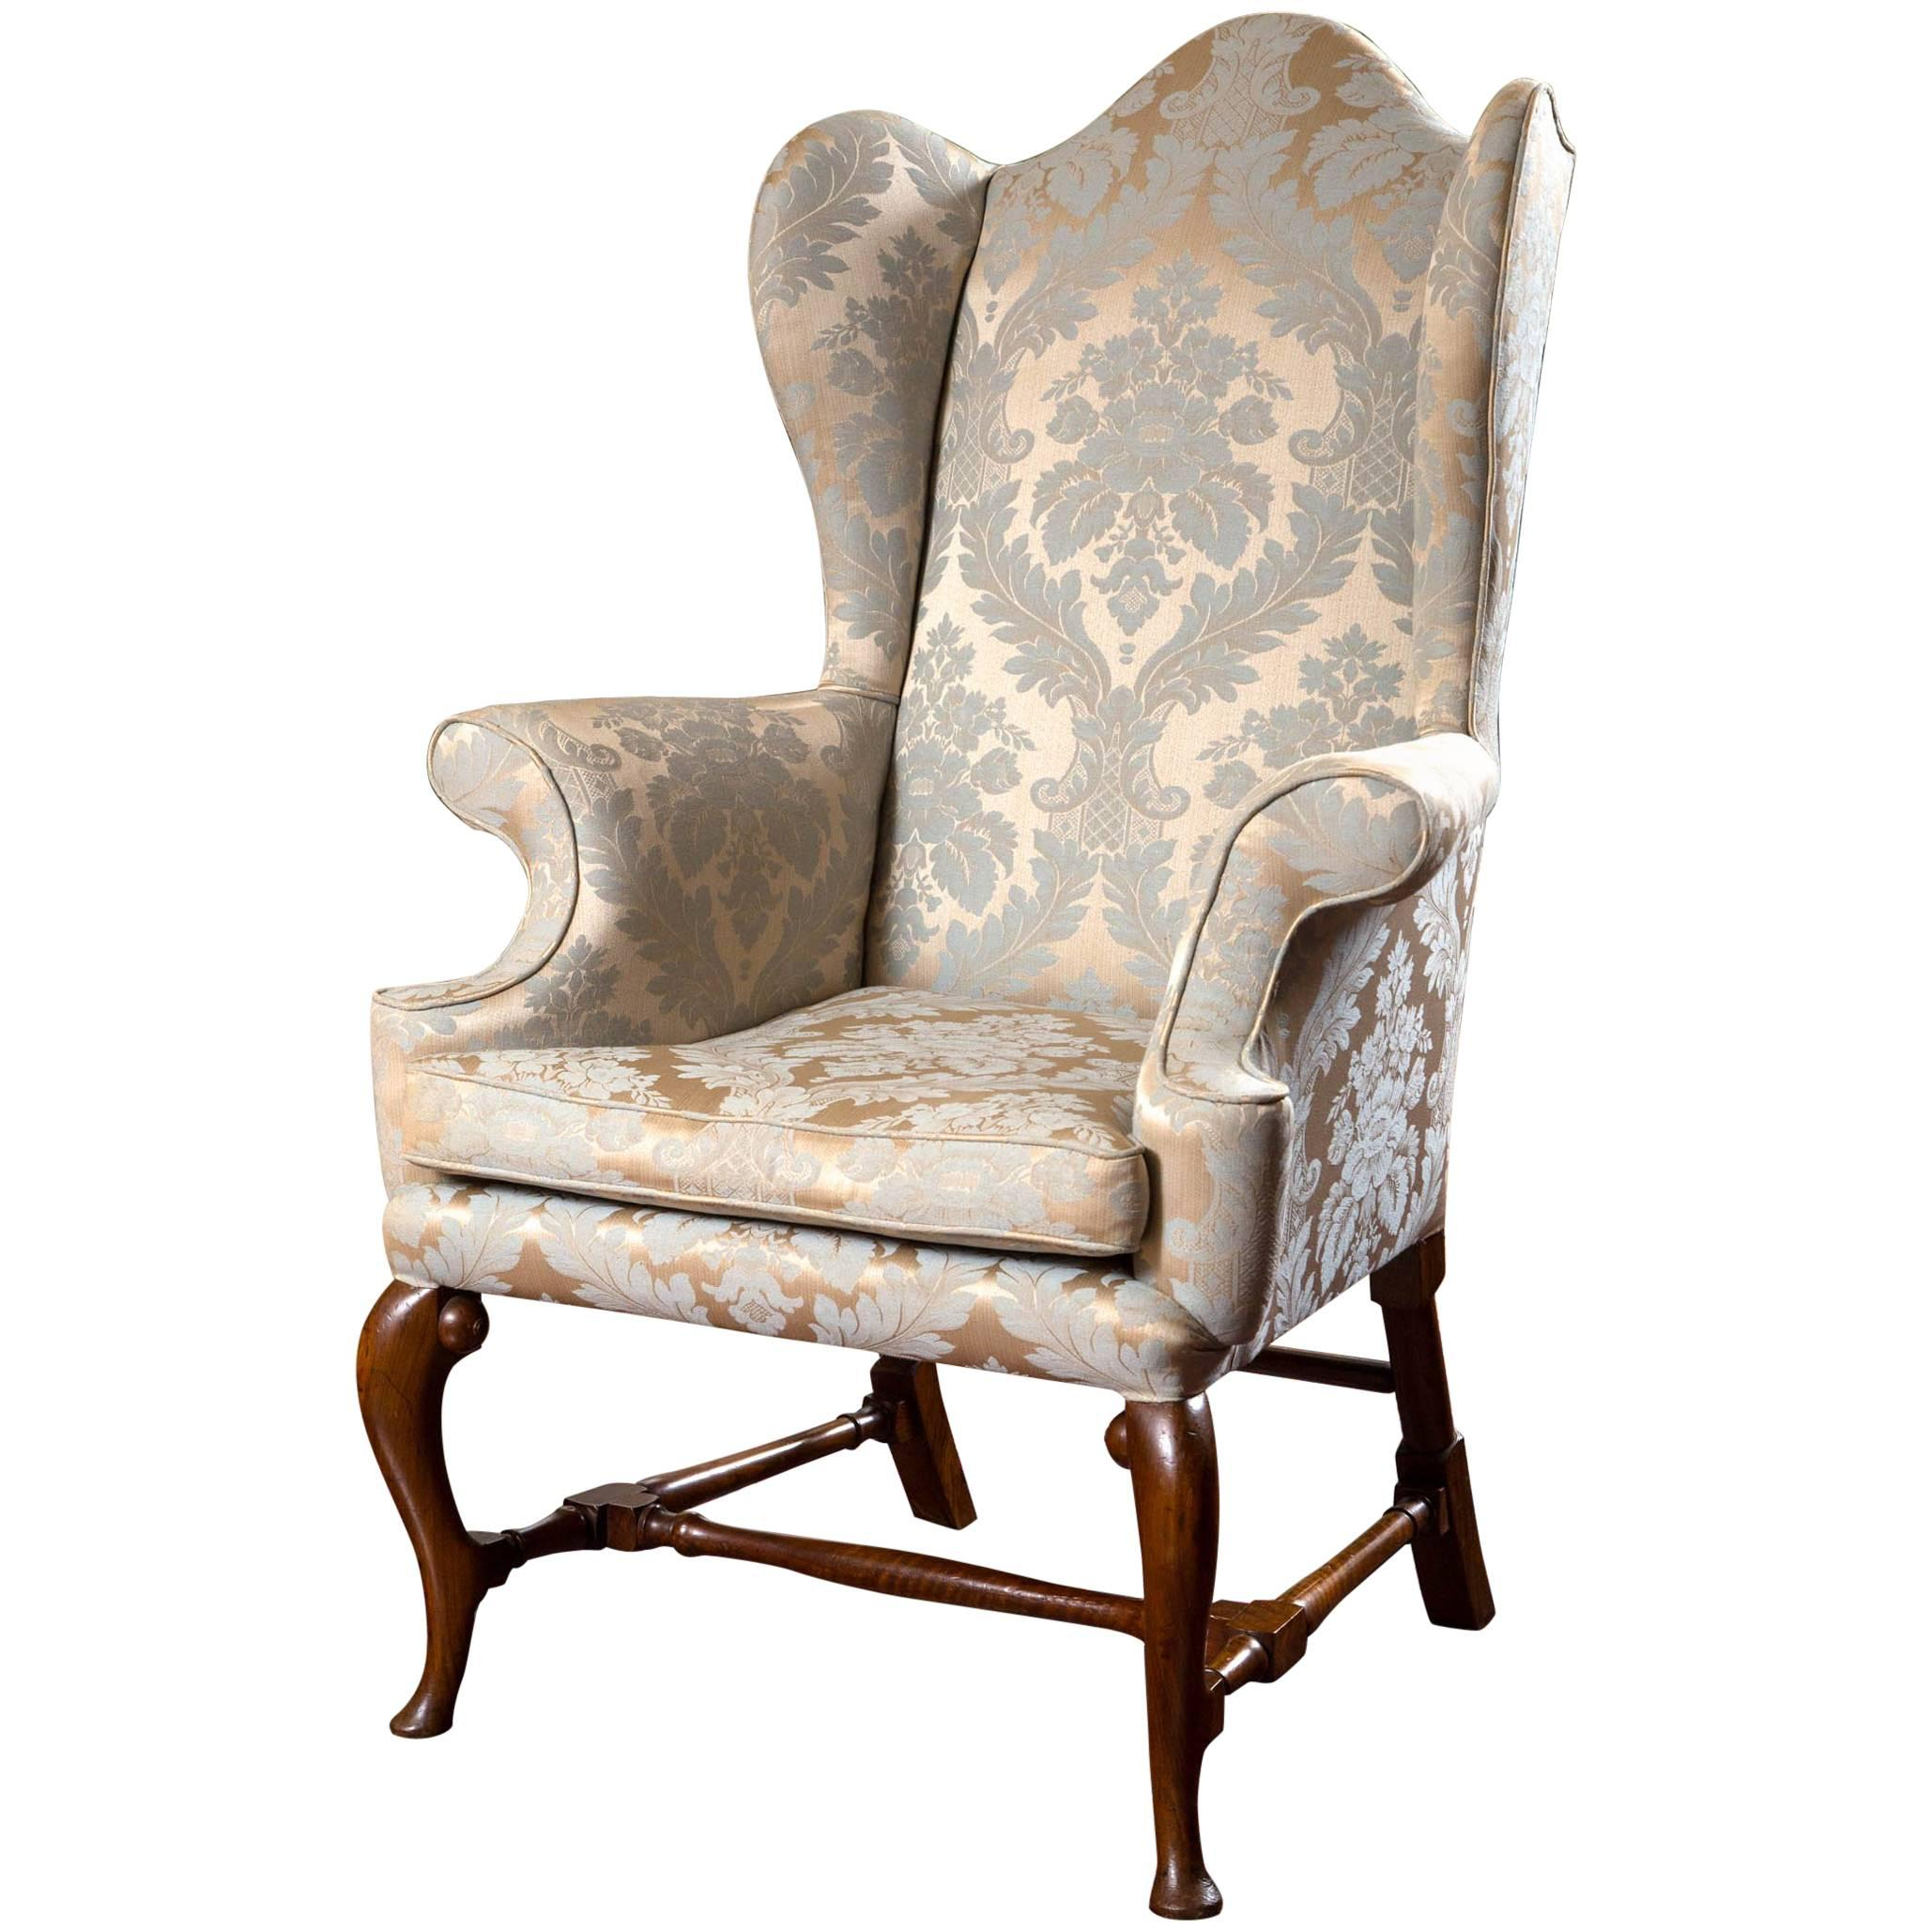 19th Century English Wing Chair